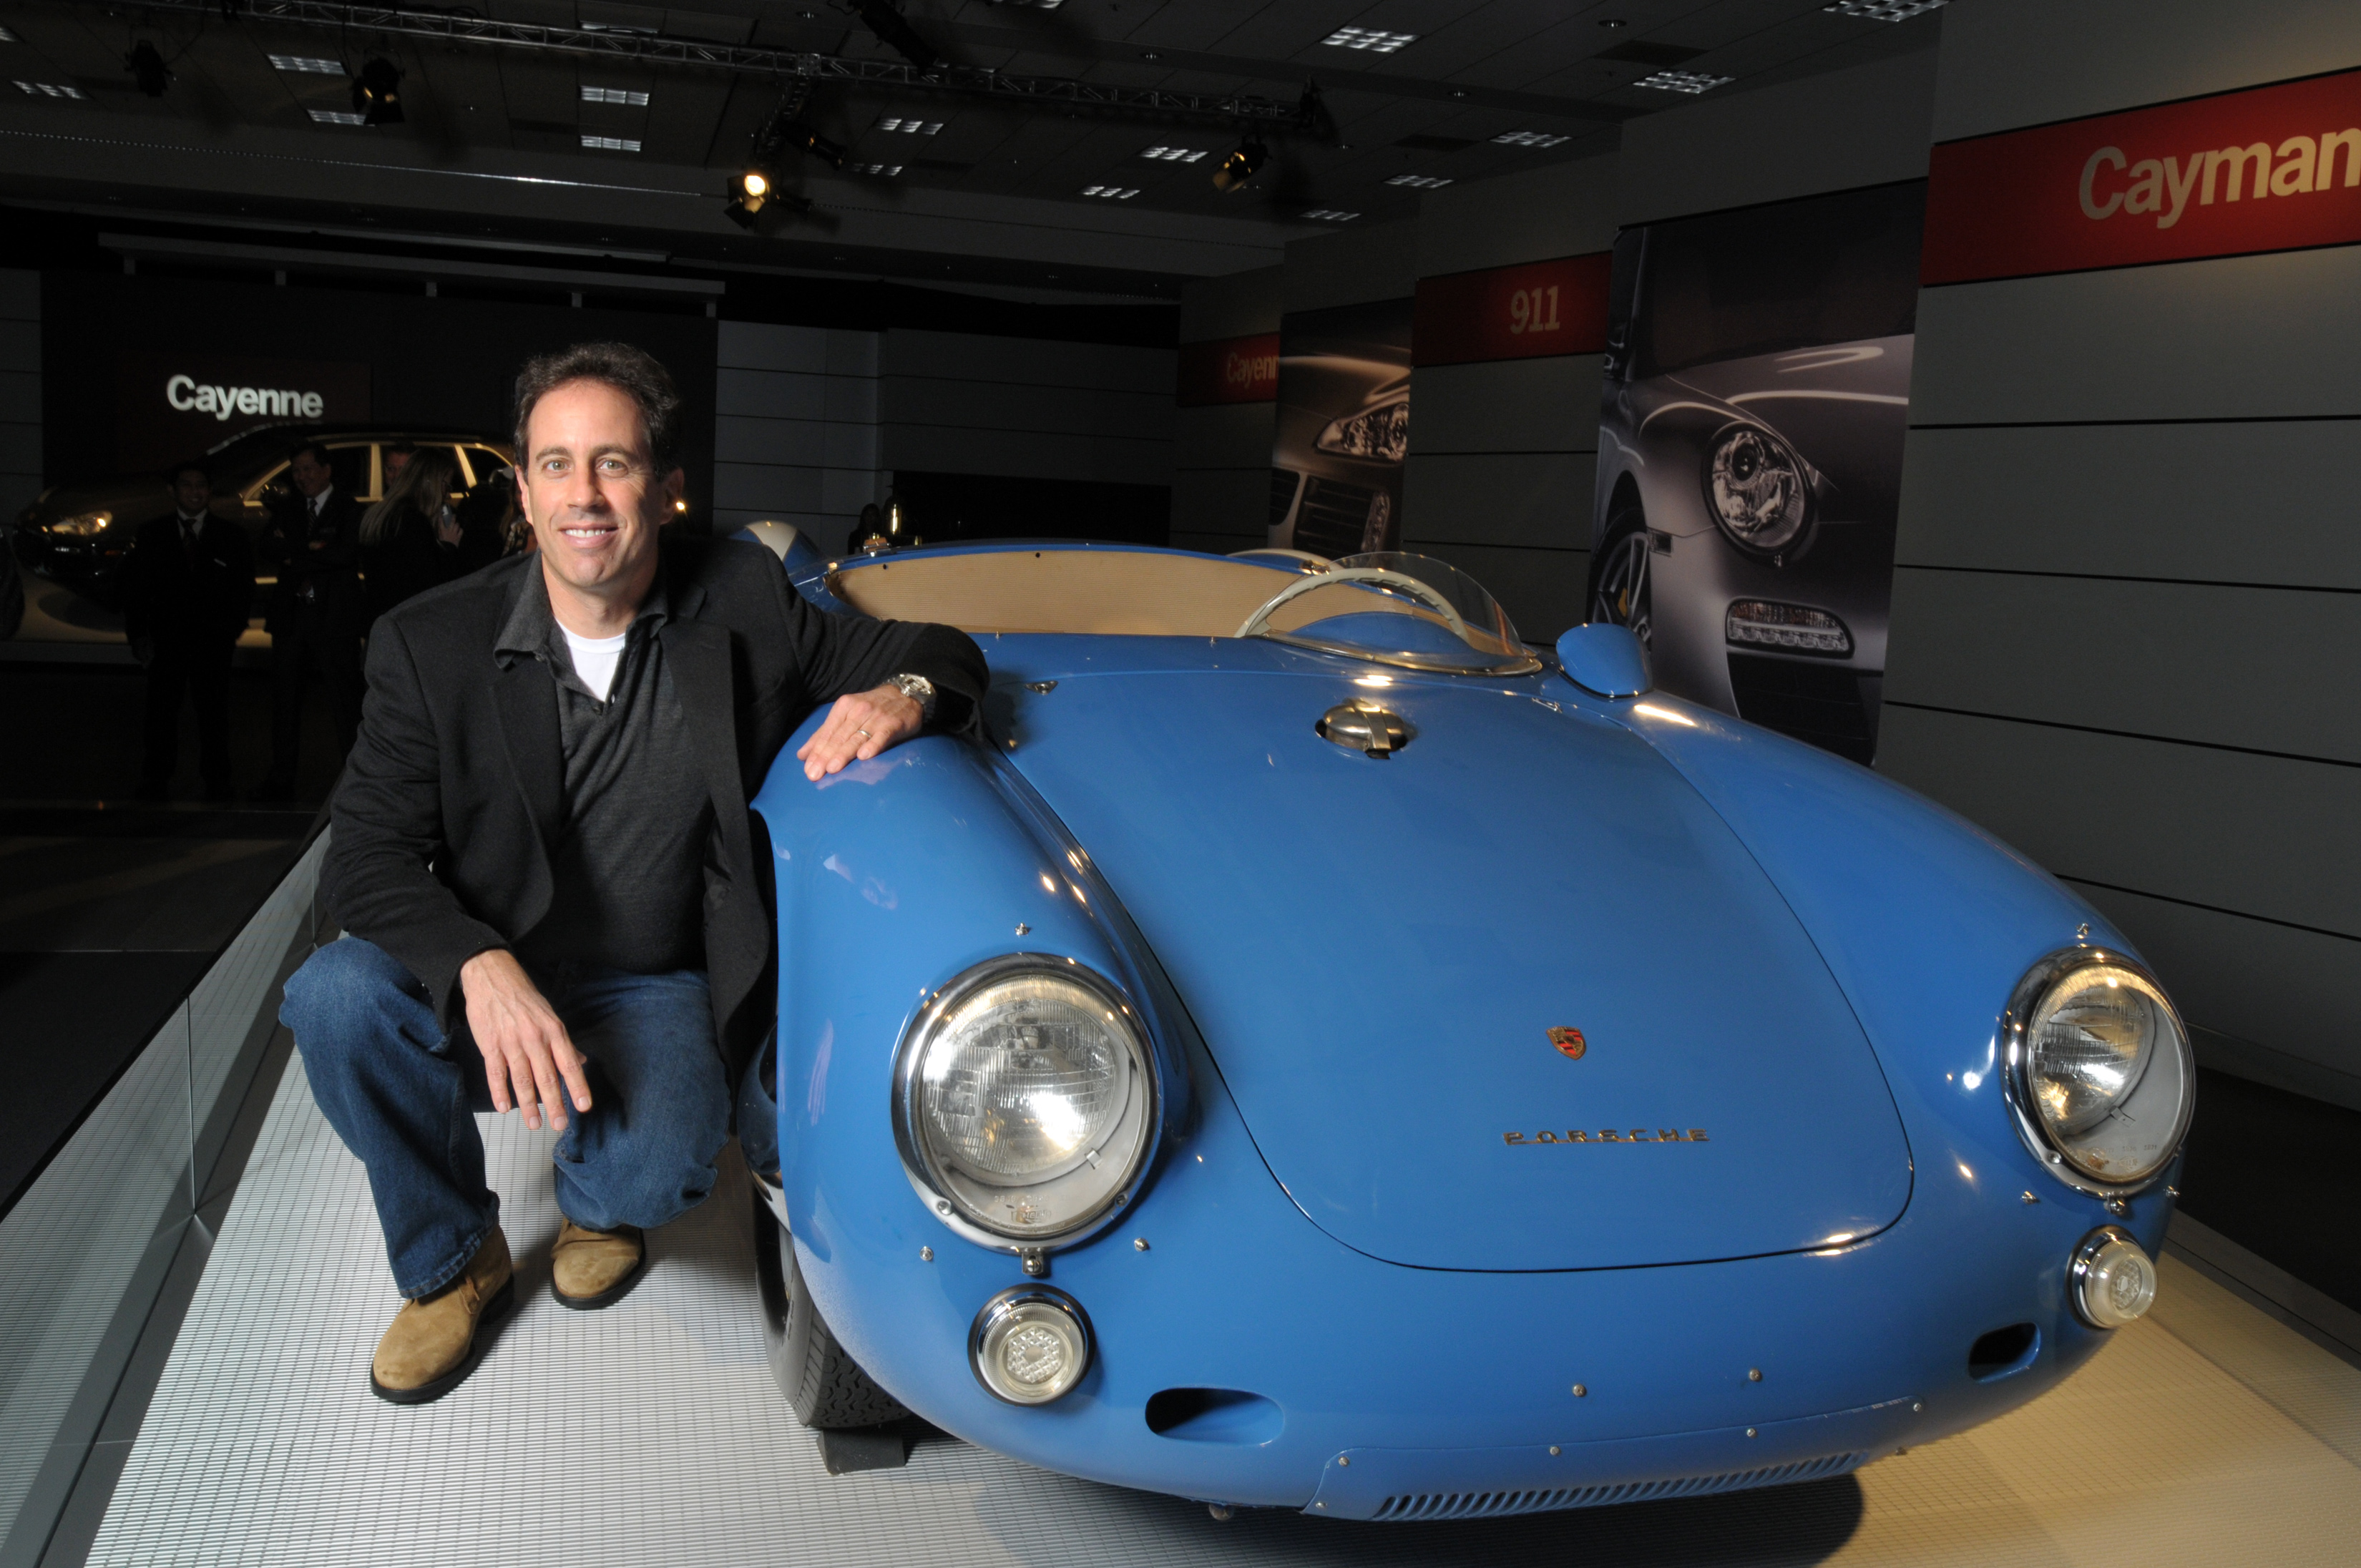 Jerry Seinfeld poses beside his Porsche 550 spyder in a showroom. The beautiful car has a rich light blue body paint